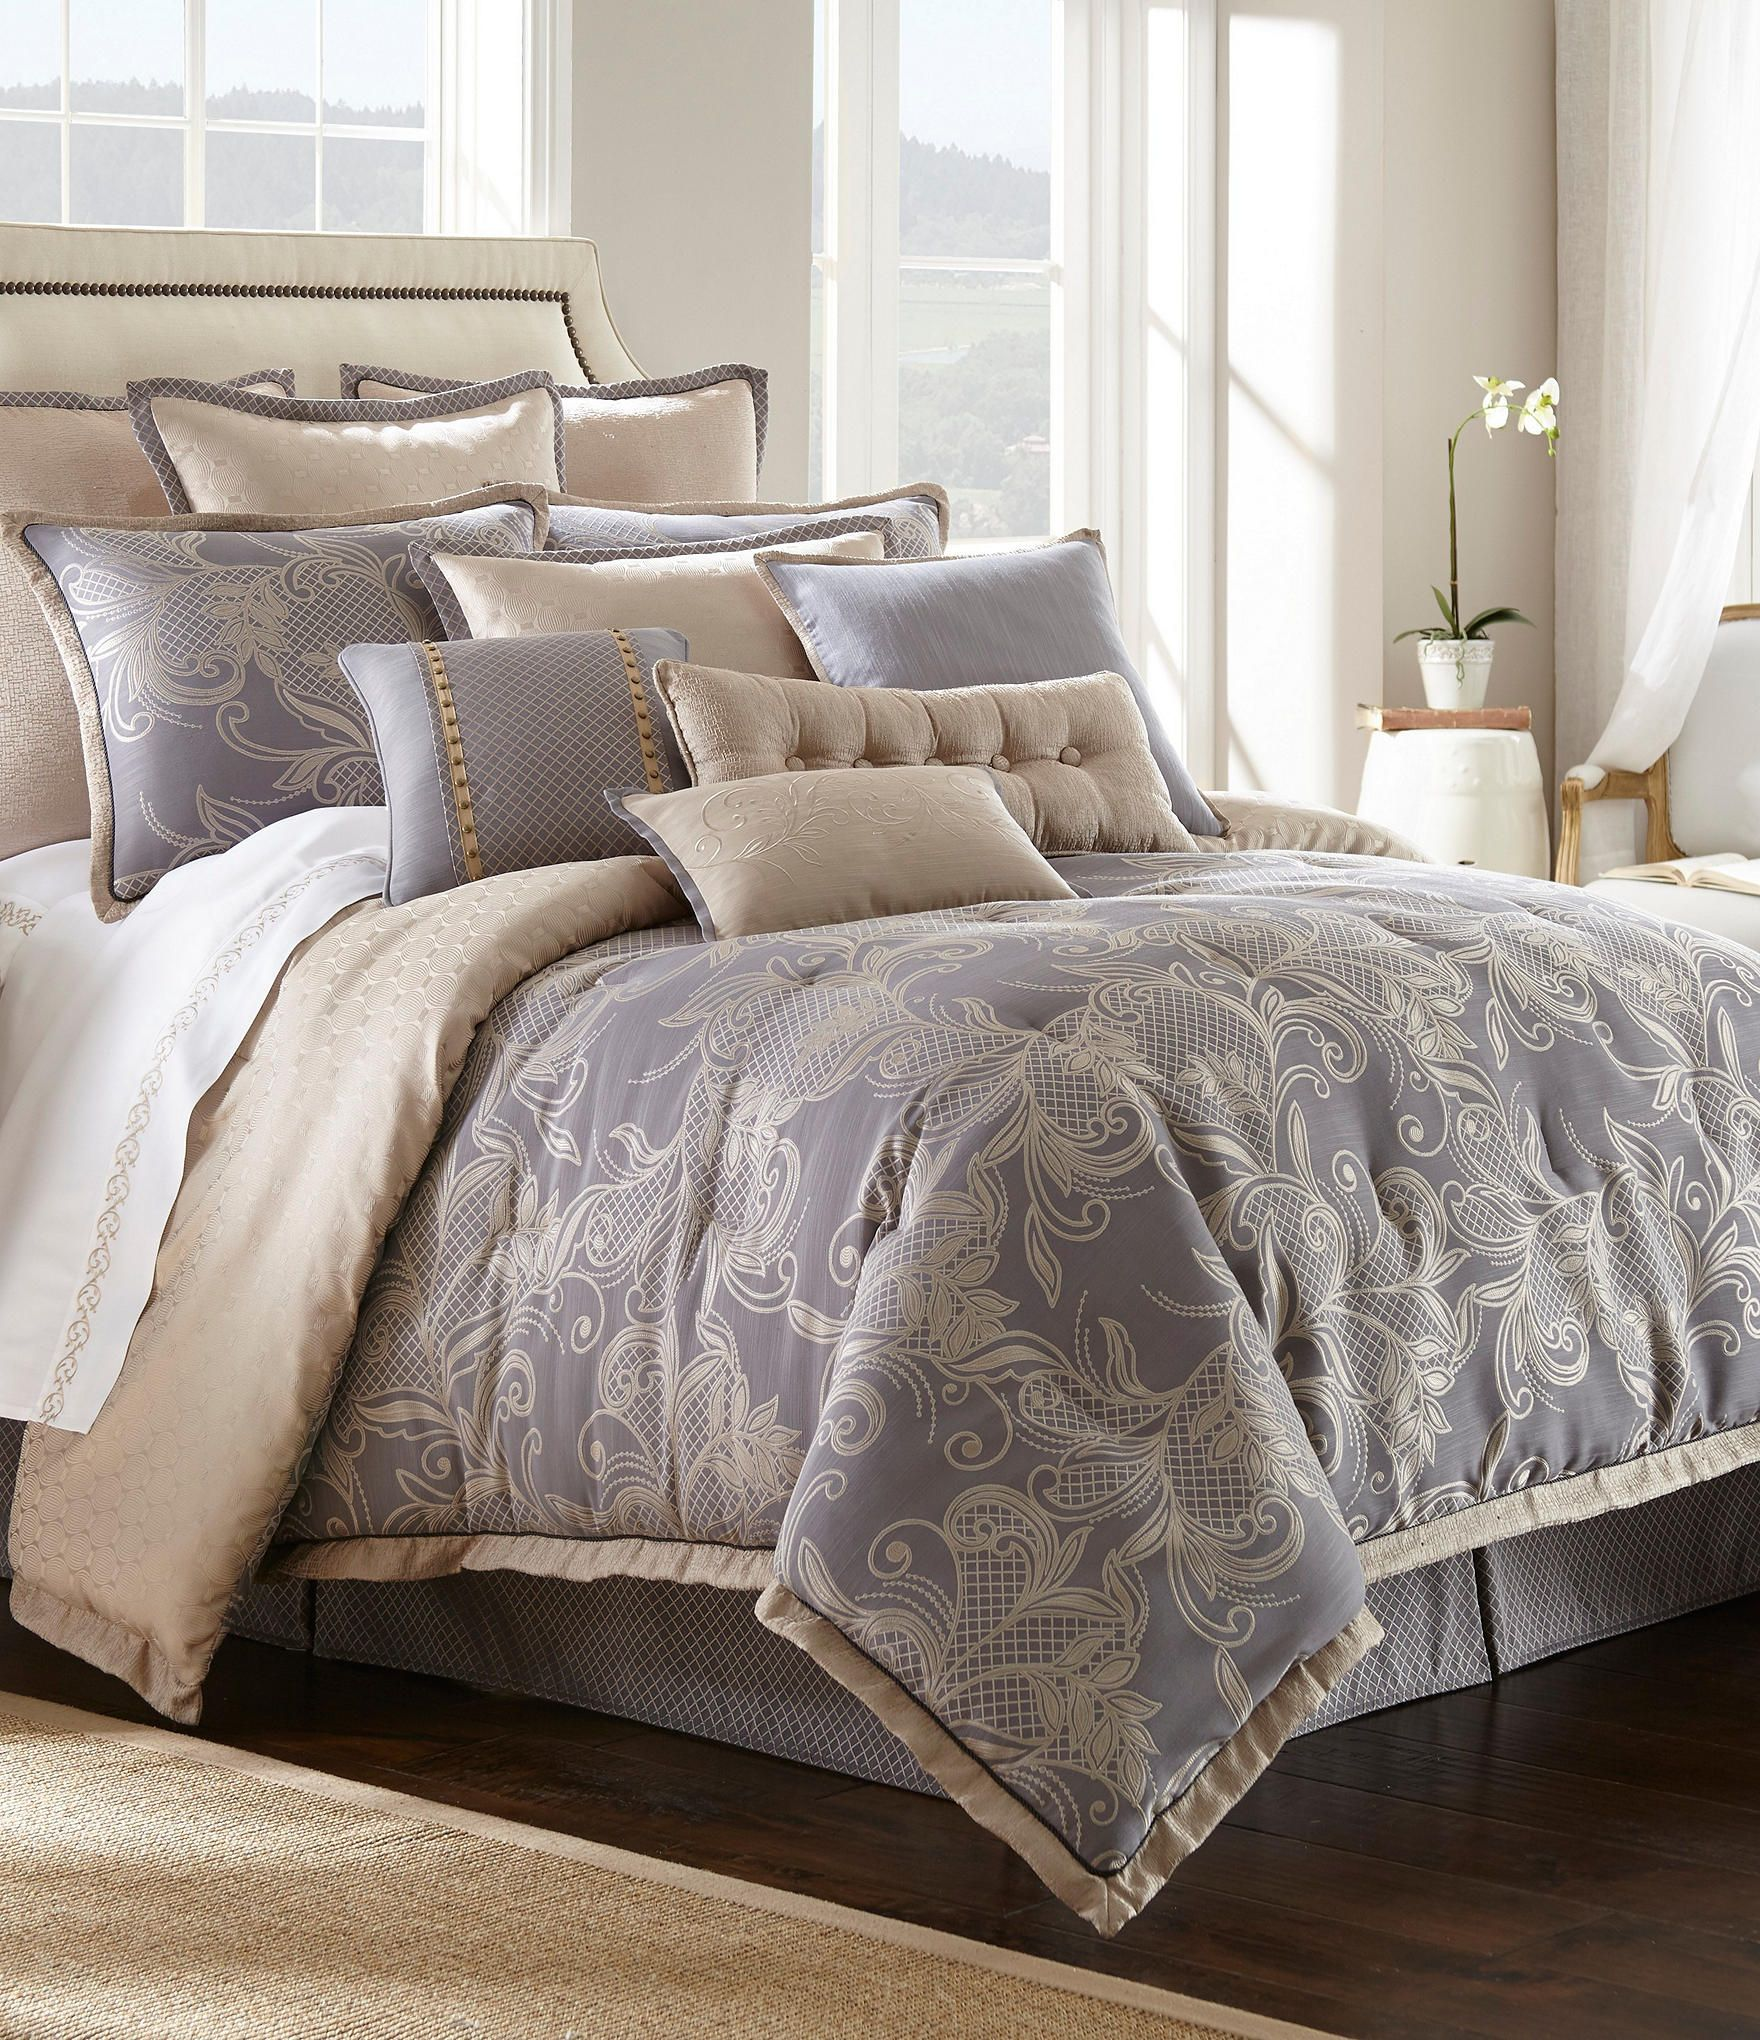 shop noble dillards furniture comforter by sets pictures villa bedroom including for trends curtains beautiful